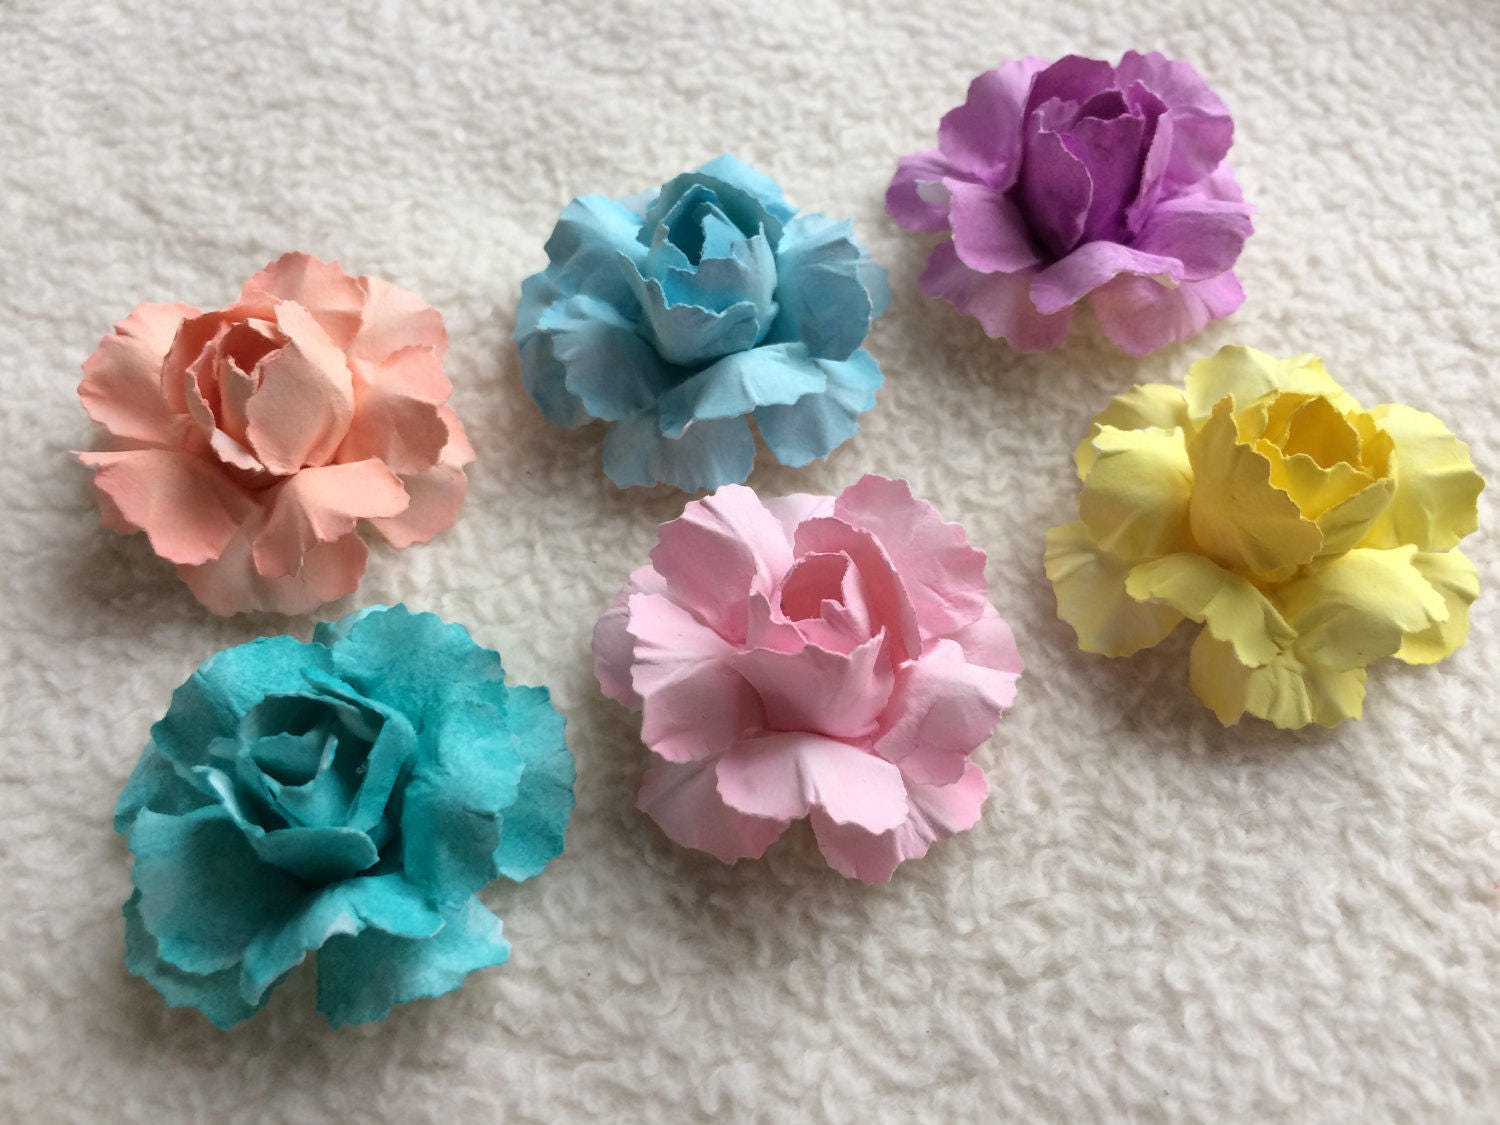 Handmade Paper Flowers6 Piece Set Of Very Chic And Shabby